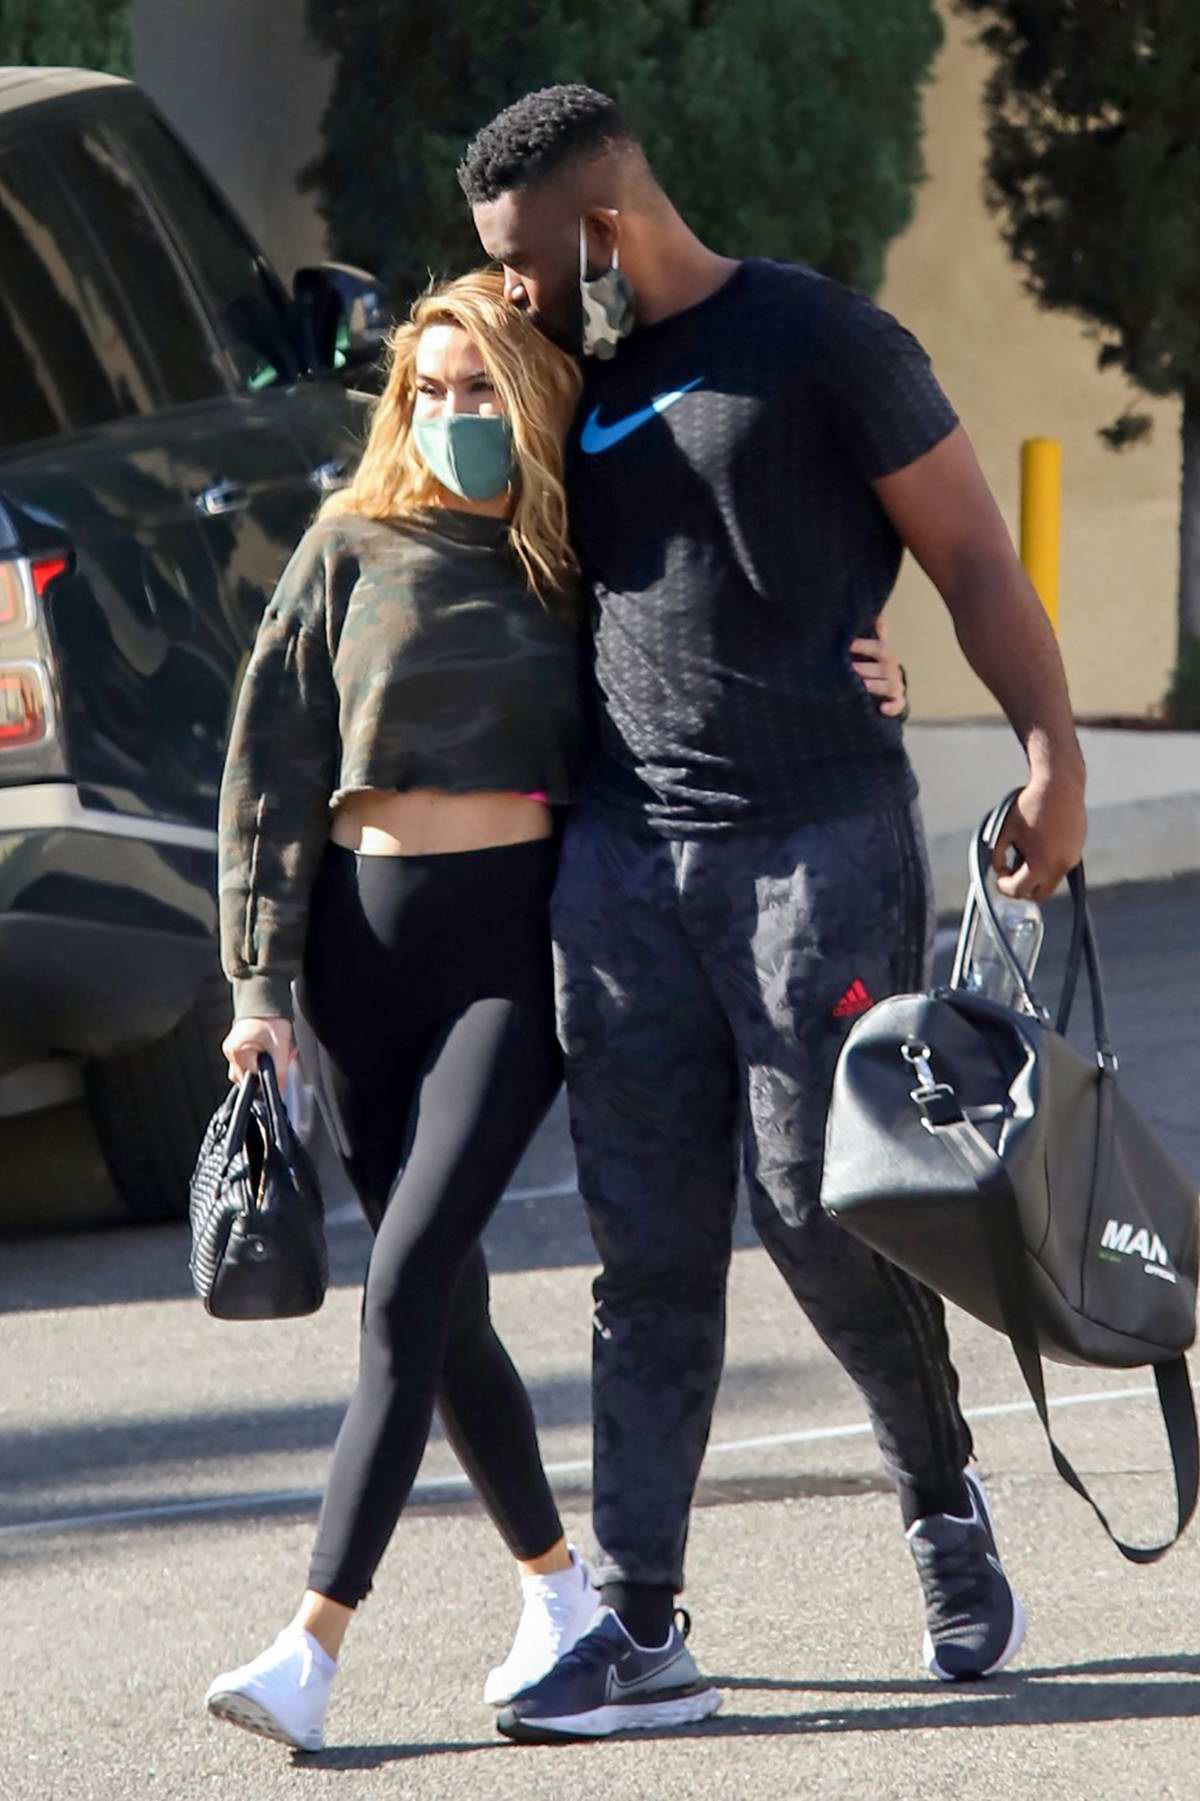 Chrishell Stause seen all loved up after a tandem workout with new boyfriend Keo Motsepe in Beverly Hills, California